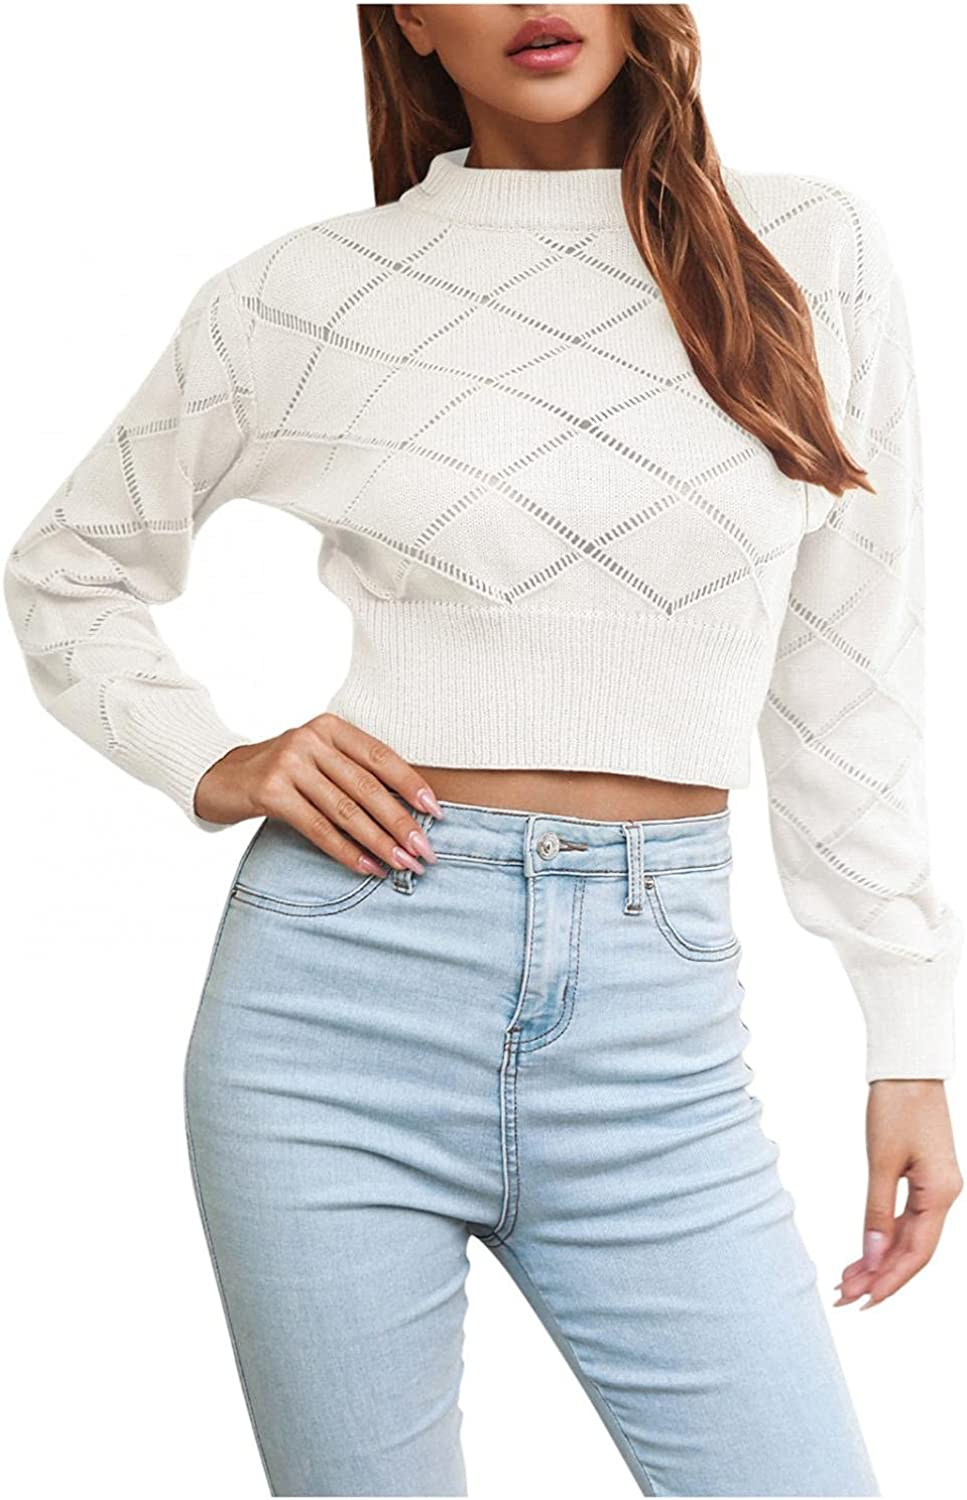 Hemlock Women Fall Sweaters Knit Crop Tops O Neck Solid Color Pullover Sweater Short Jumper Slim Blouses